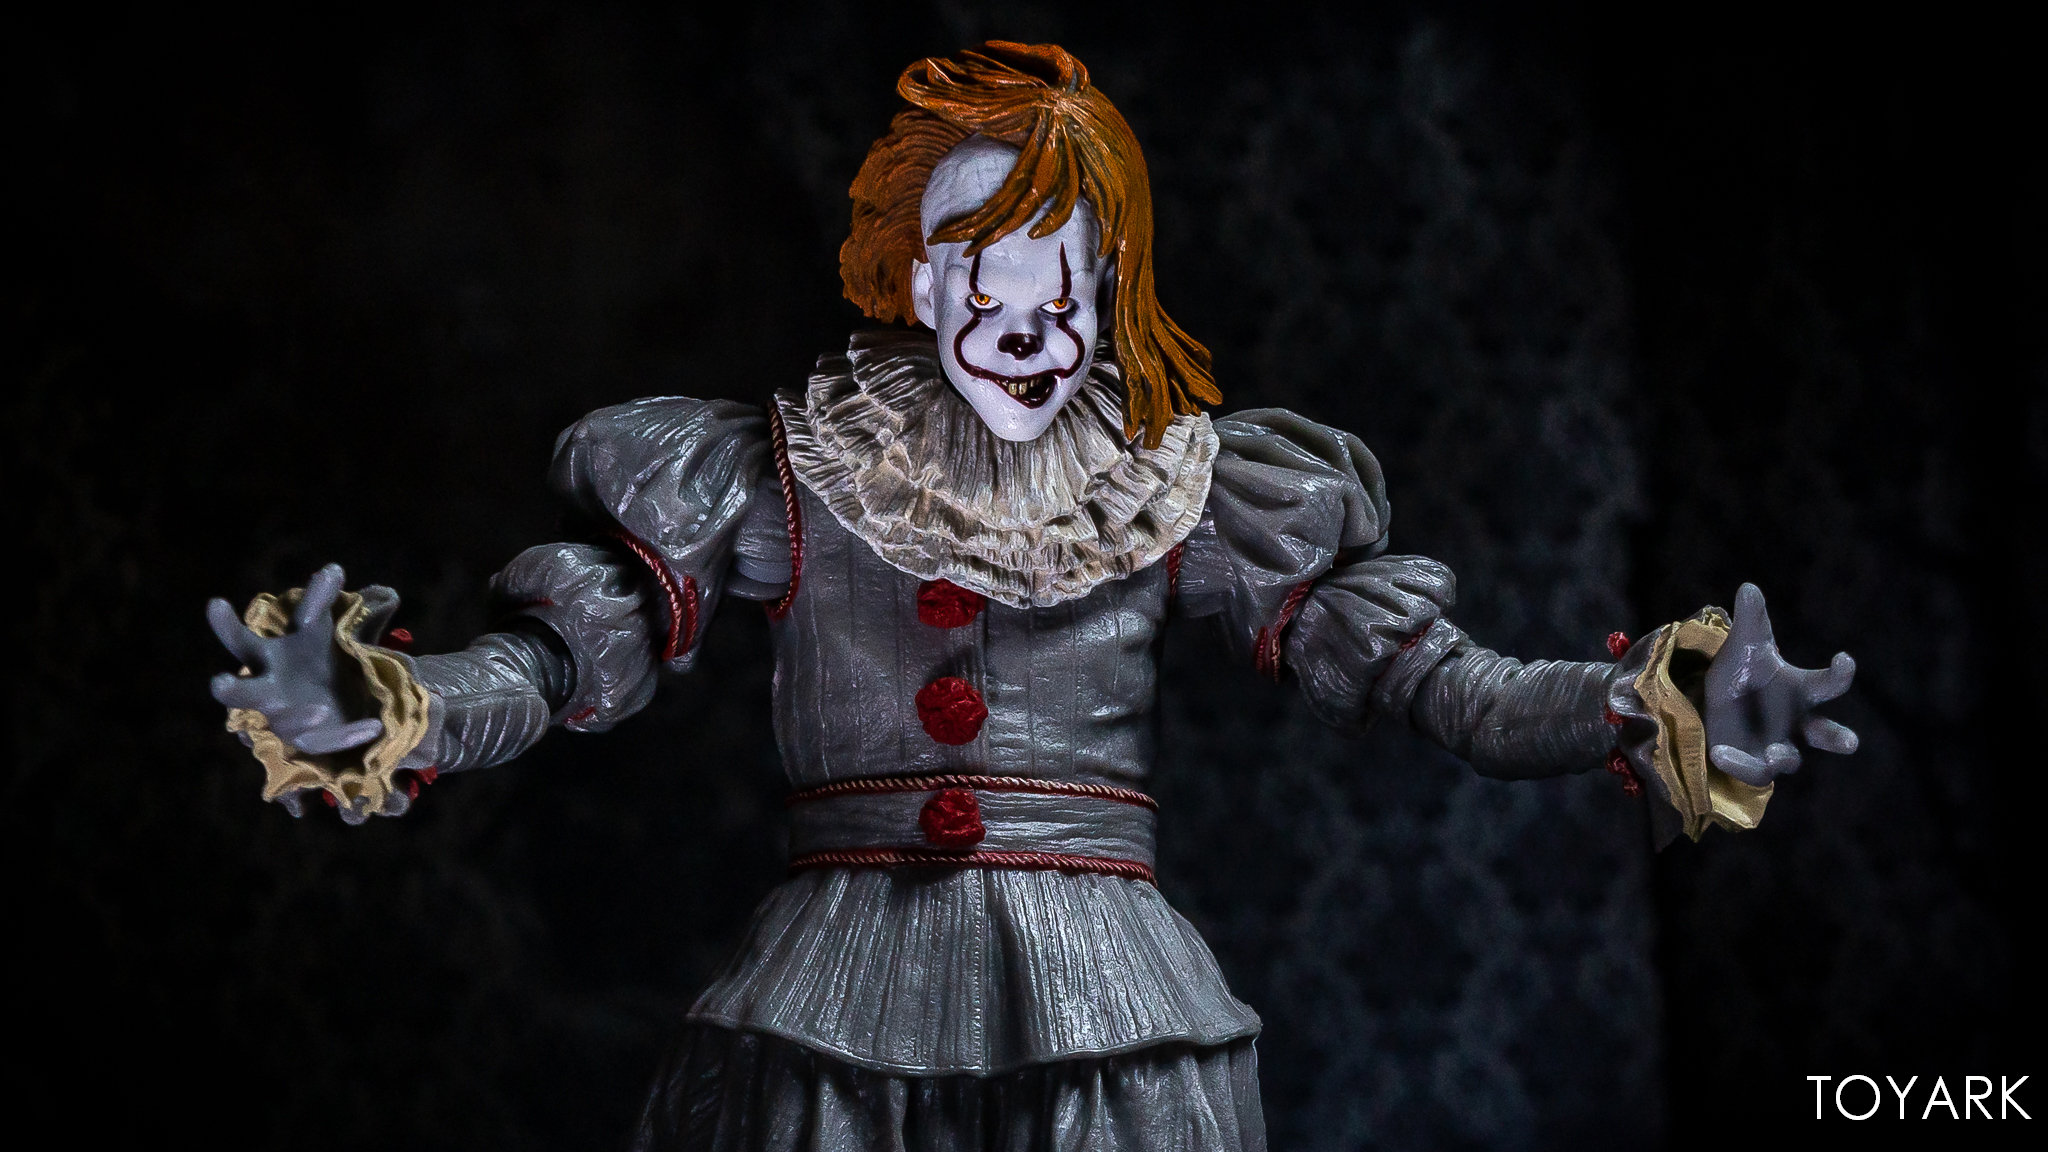 https://news.toyark.com/wp-content/uploads/sites/4/2019/03/Well-House-Pennywise-Gallery-040.jpg